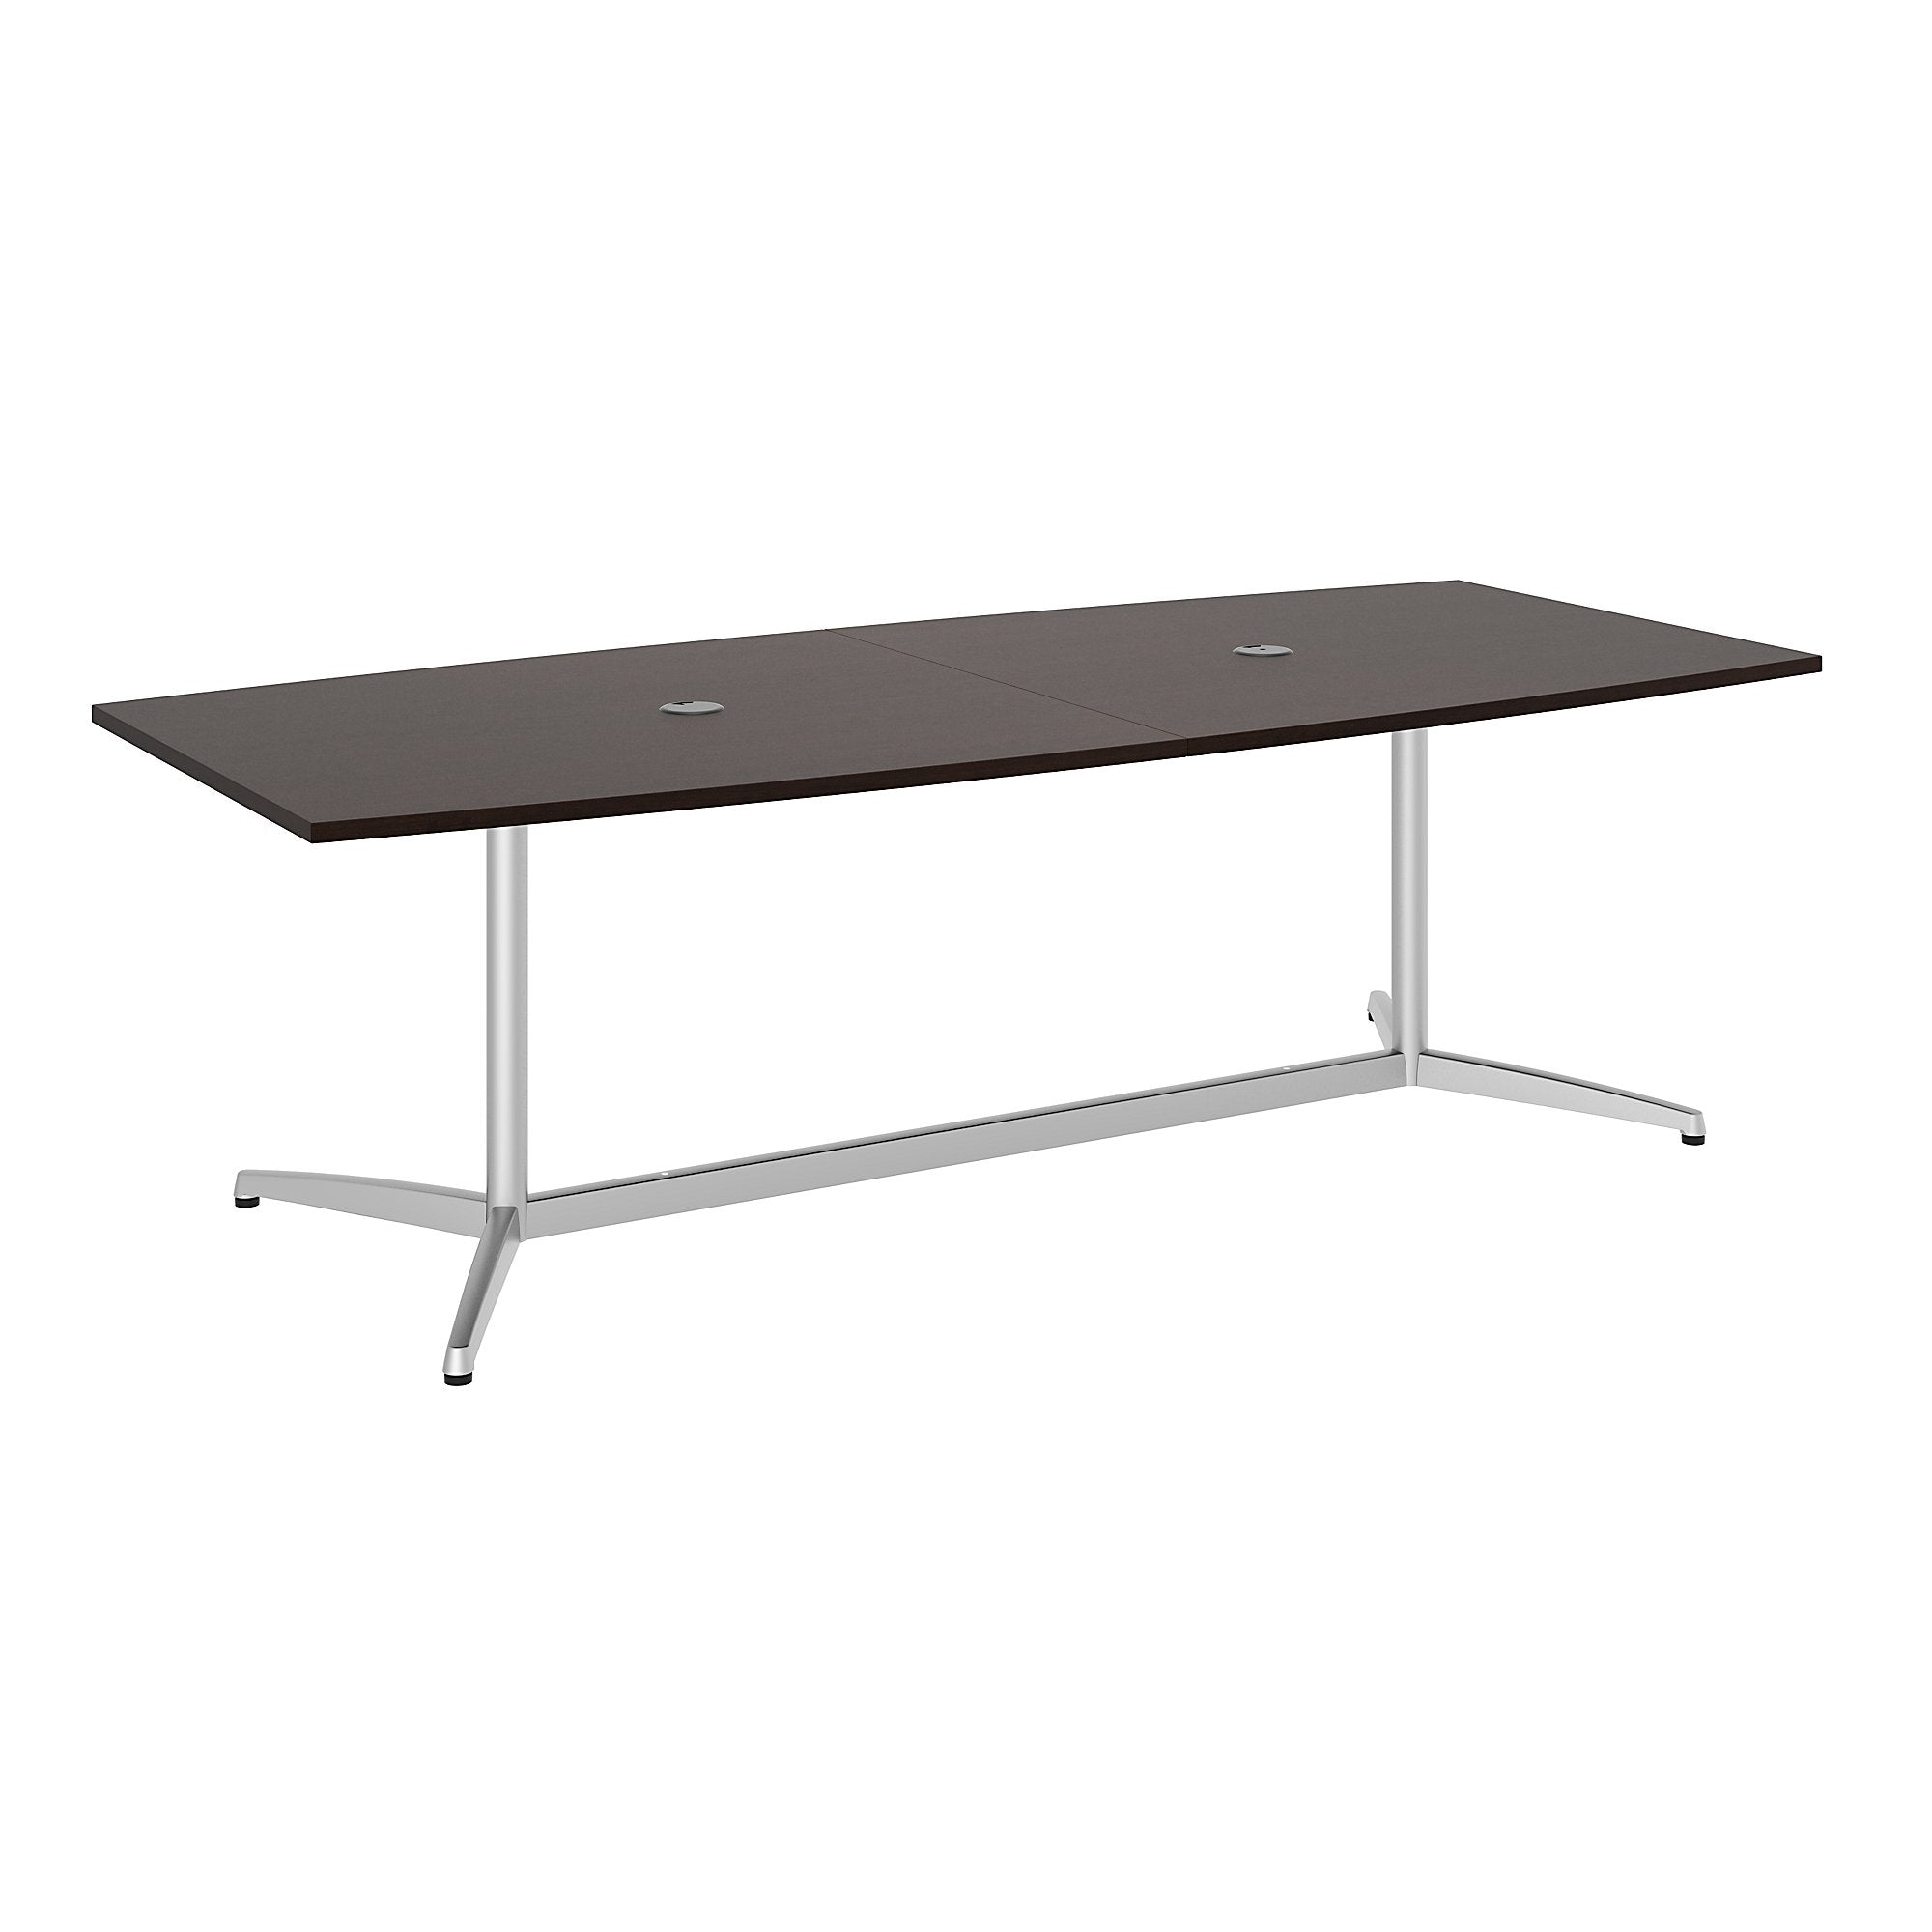 Bush Business Furniture 96W x 42D Boat Shaped Conference Table with Metal Base | Mocha Cherry/Silver